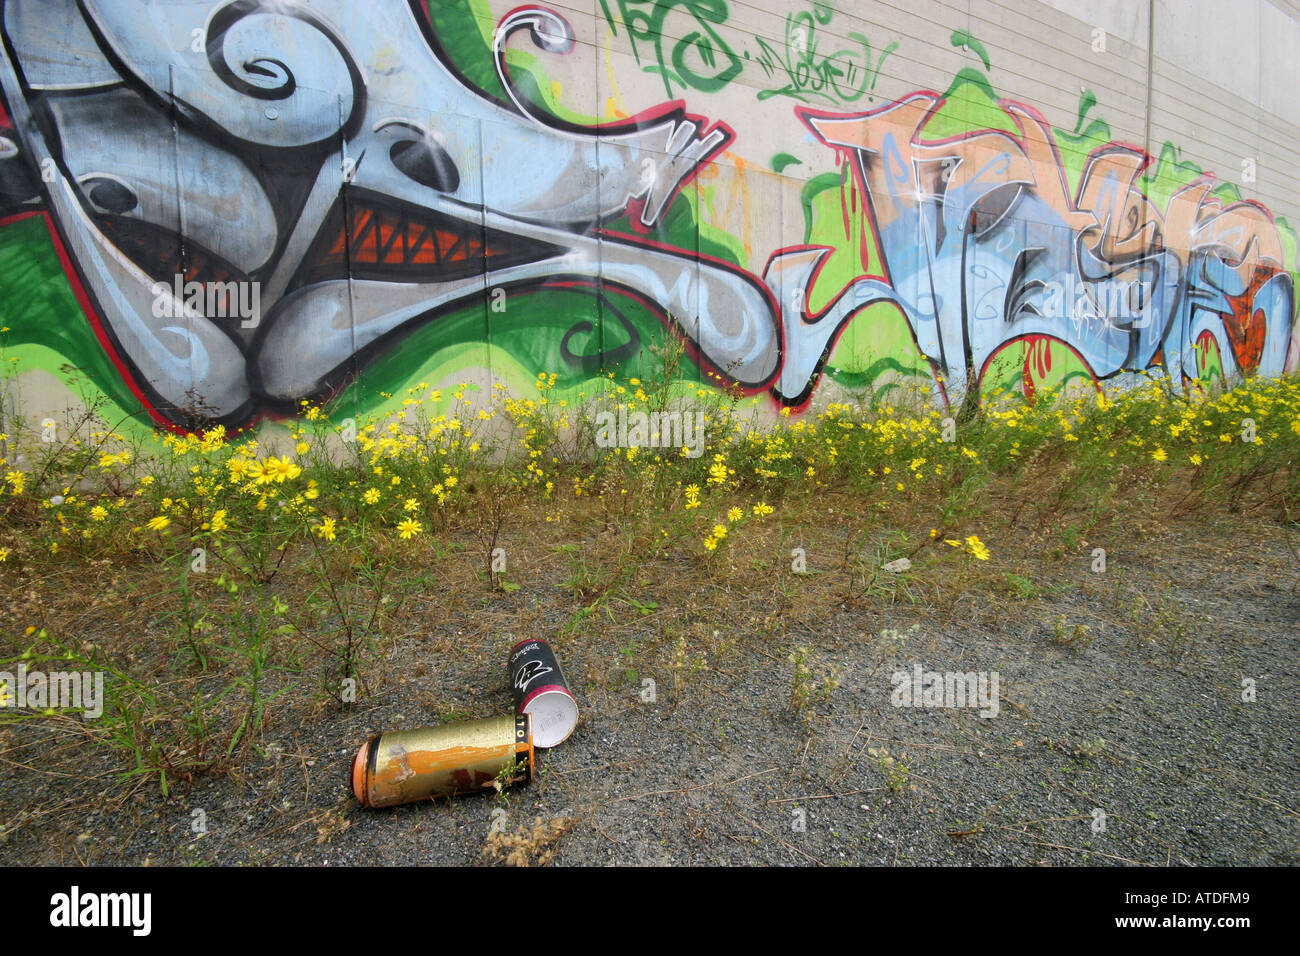 Empty color-can in front of a concrete wall with colorfull graffitti - Stock Image